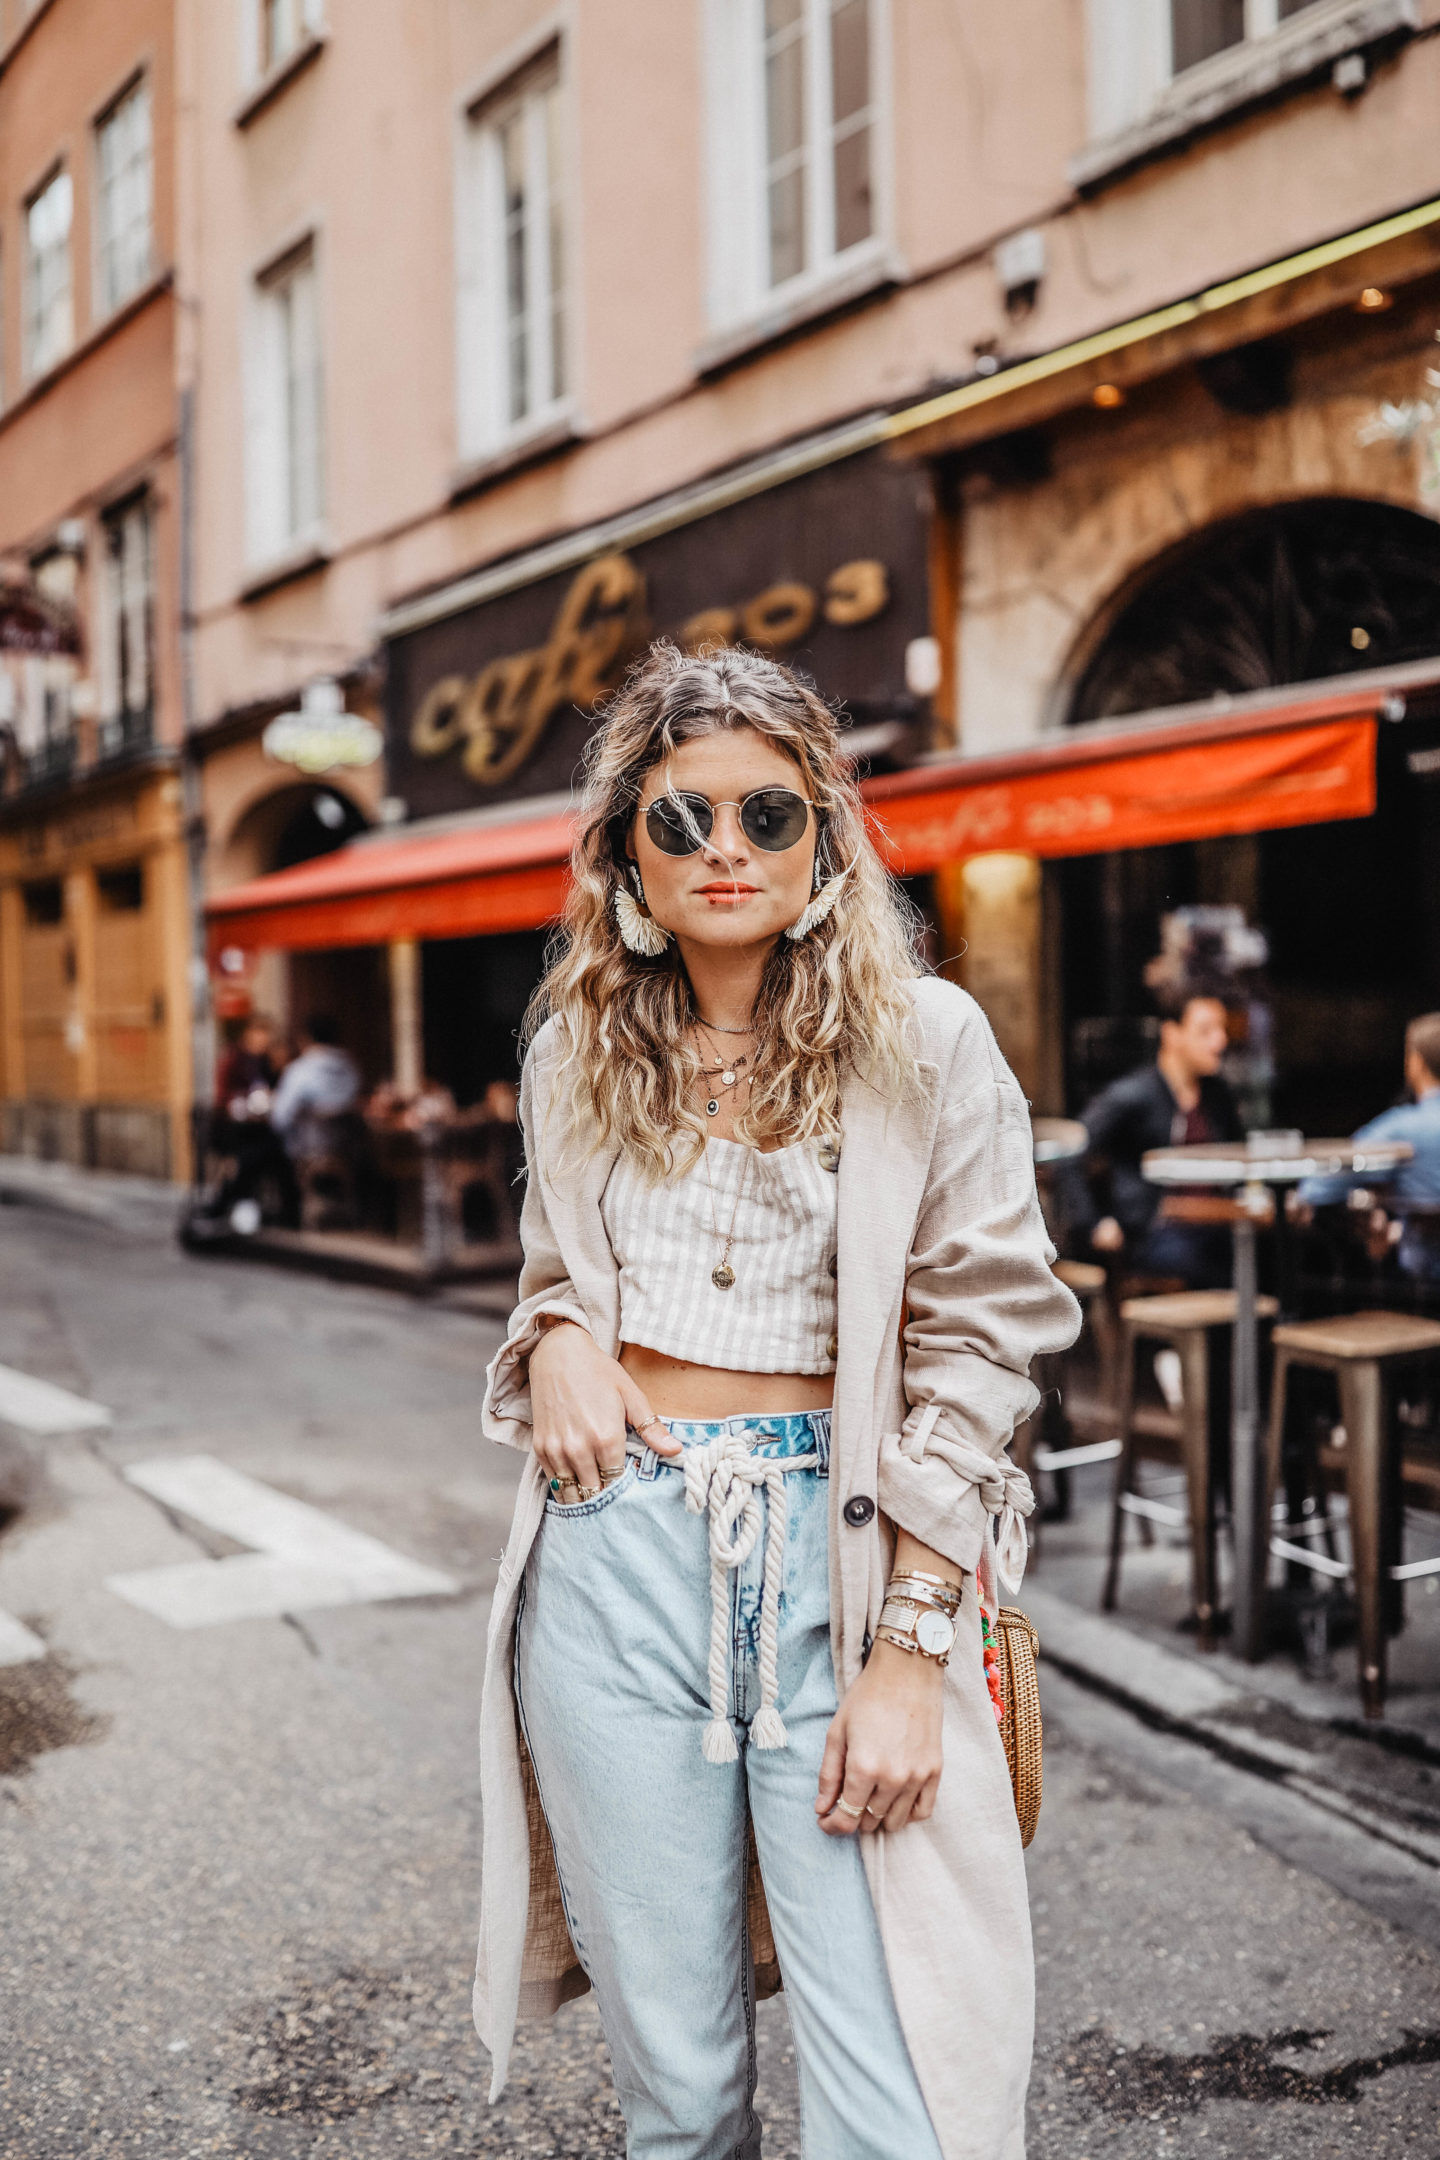 Tendance jean taille haute et crop top marie and mood